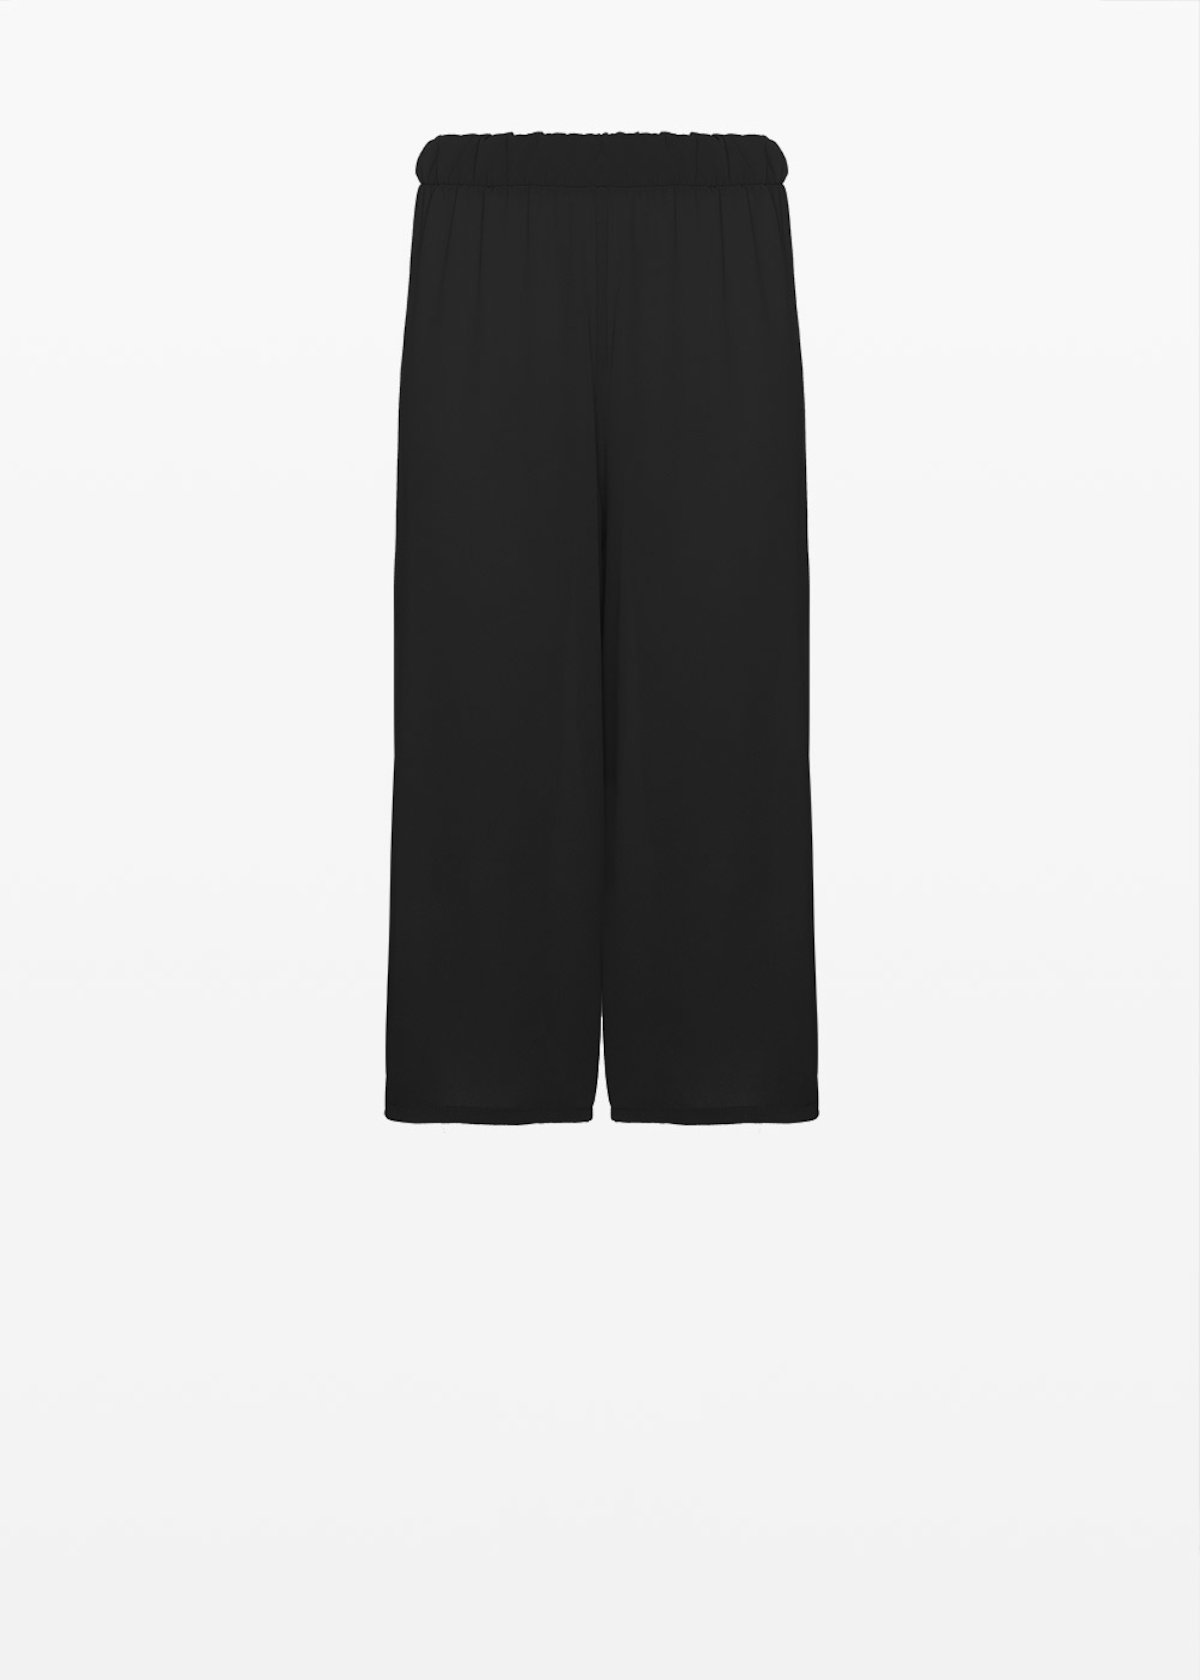 Hammered crepe Peleo trousers with elastic waist